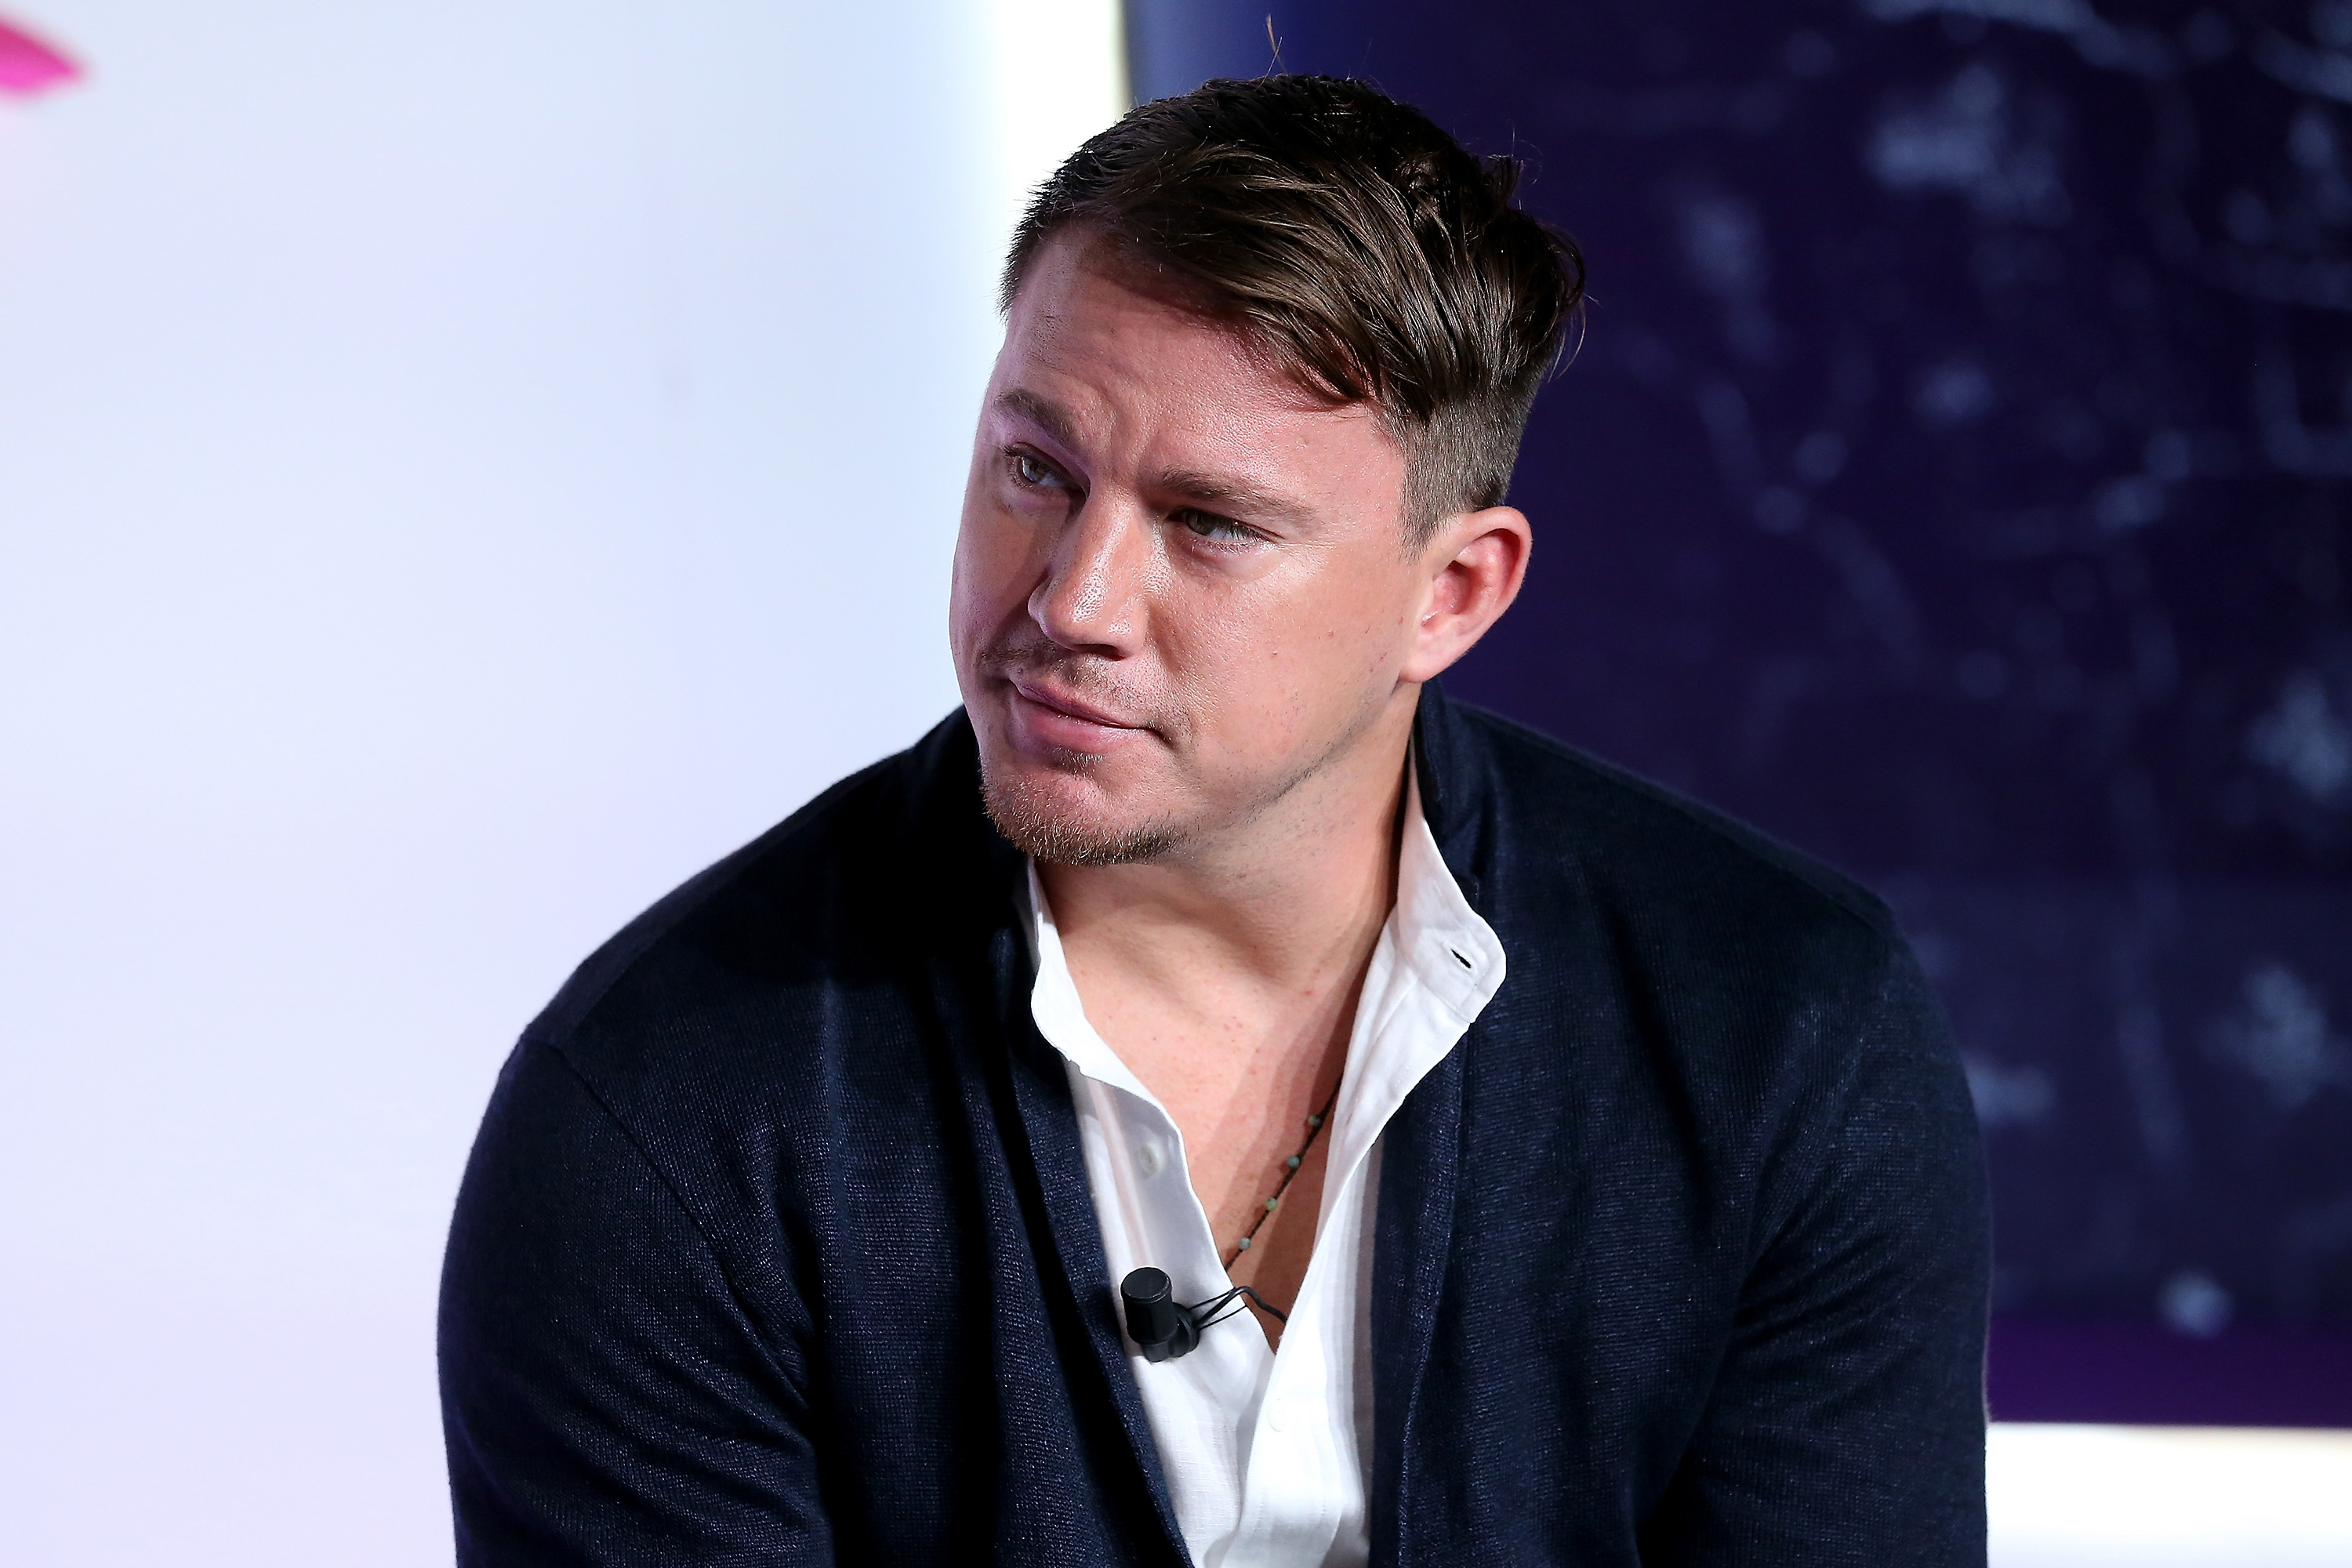 CANNES, FRANCE - JUNE 23: Actor Channing Tatum speaks during  bred for content  seminar hosted by UTA during The Cannes Lions 2016 on June 23, 2016 in Cannes, France.  (Photo by Romain Perrocheau/Getty Images)